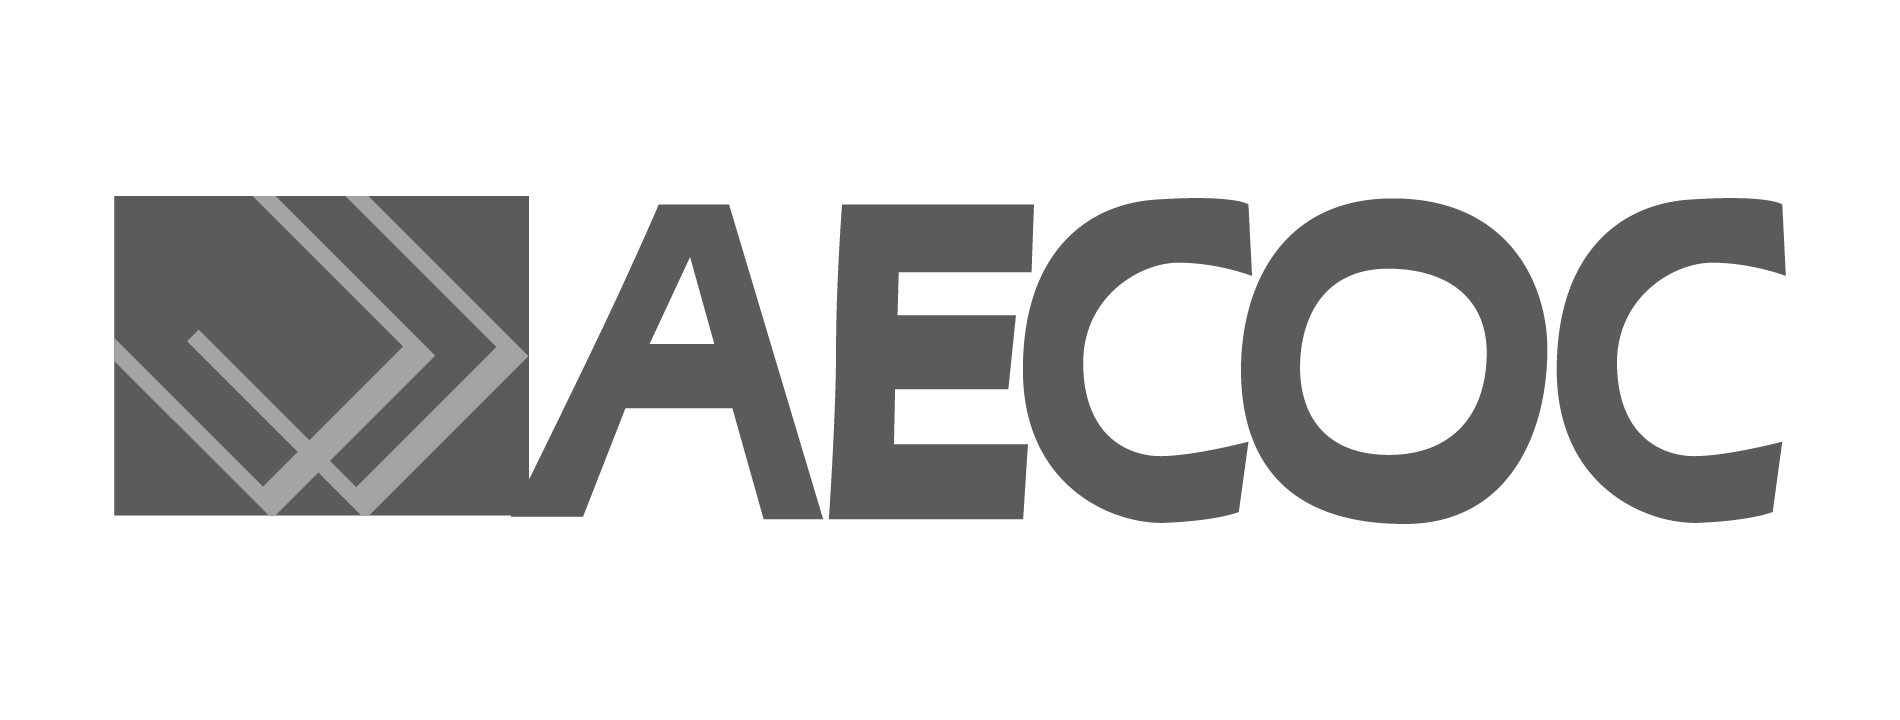 aecoc@2x.png